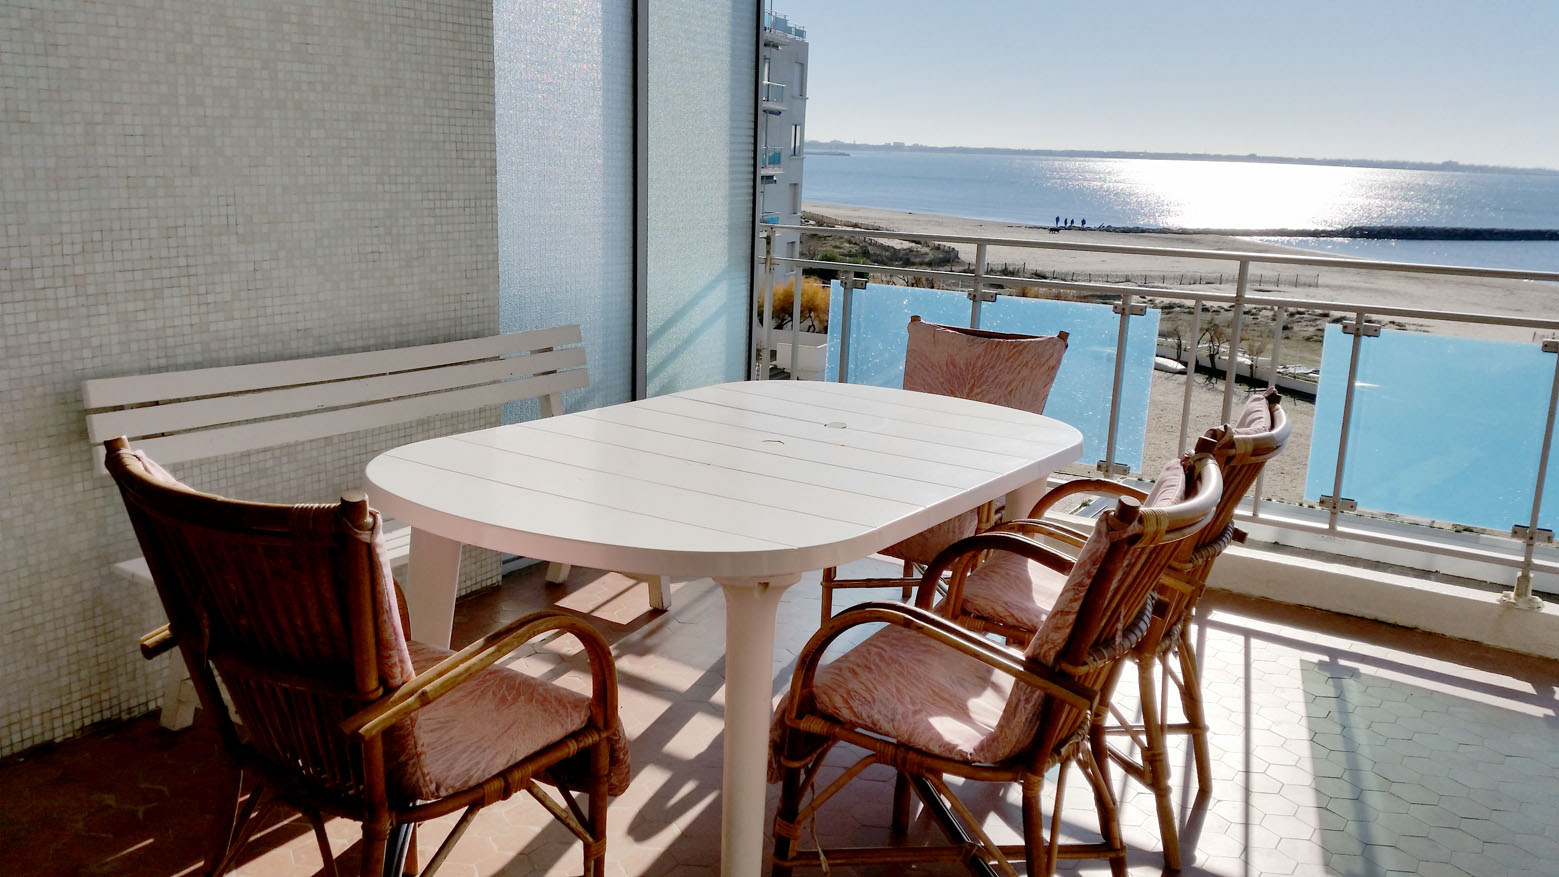 Appartement Terrasse 92 Offres Locations Vacances T4 Vue Mer 92 M2 Terrasse 29